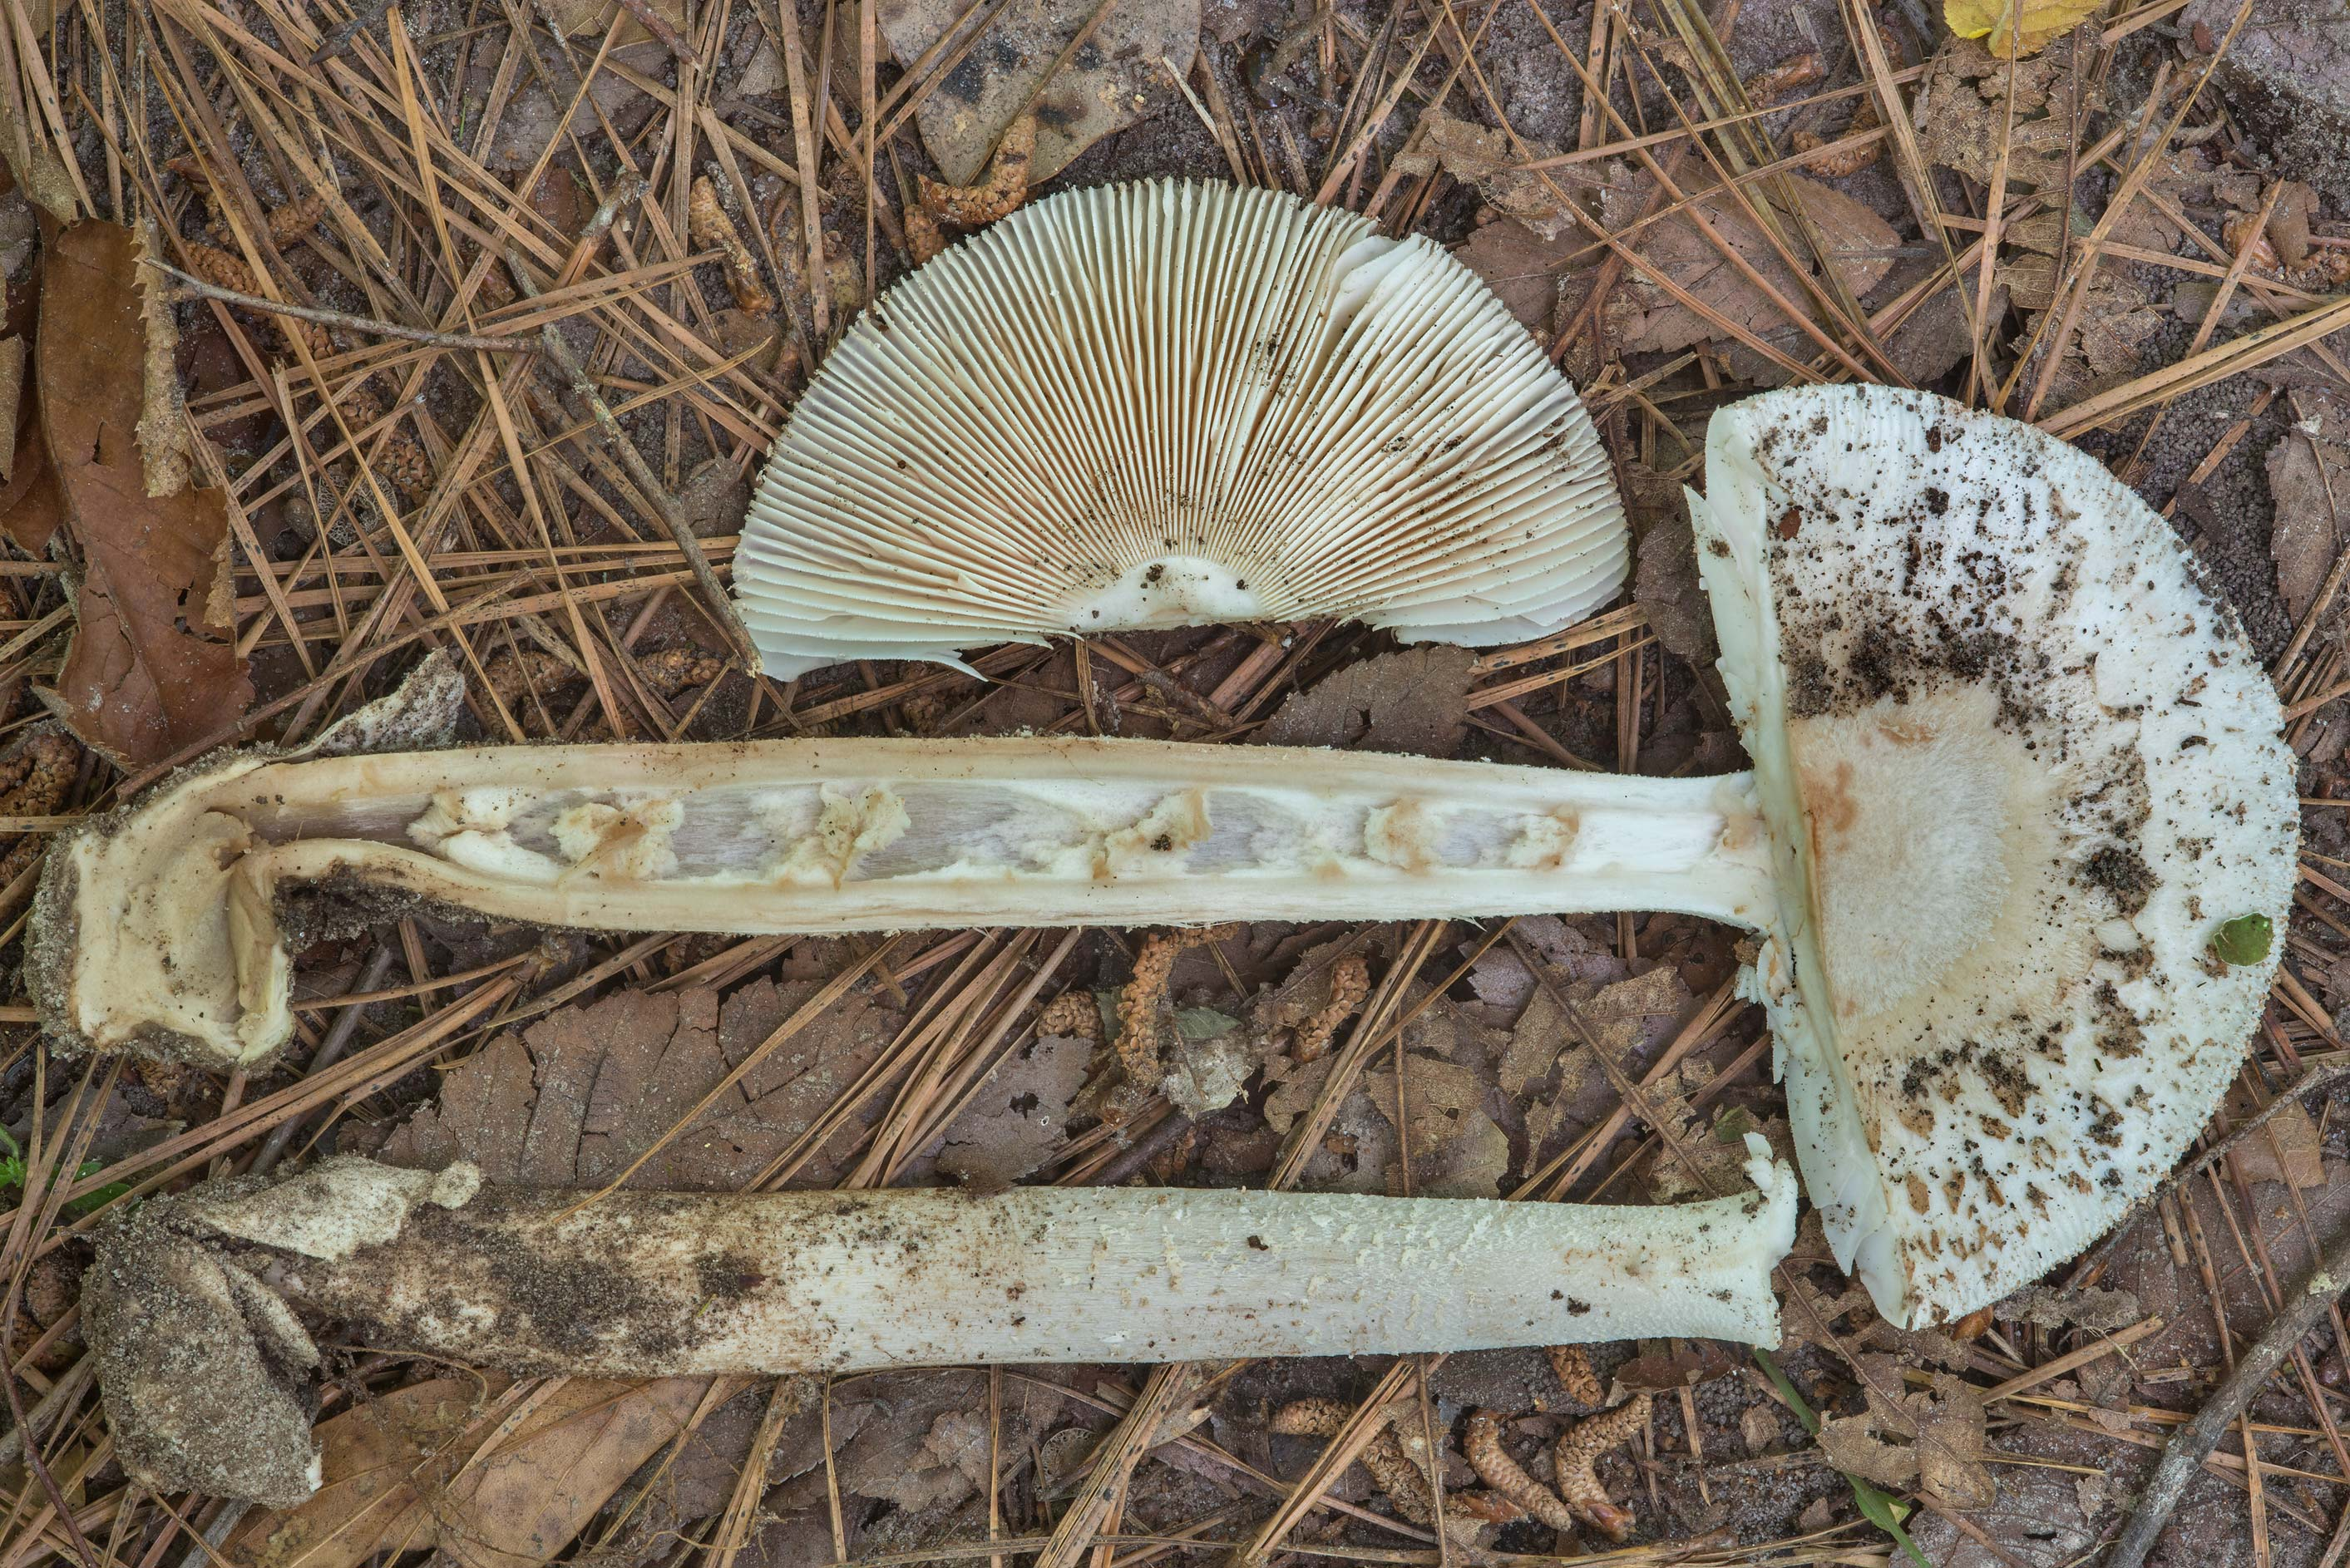 Dissected Amanita sect. Vaginatae or may be...Forest, near Huntsville. Texas